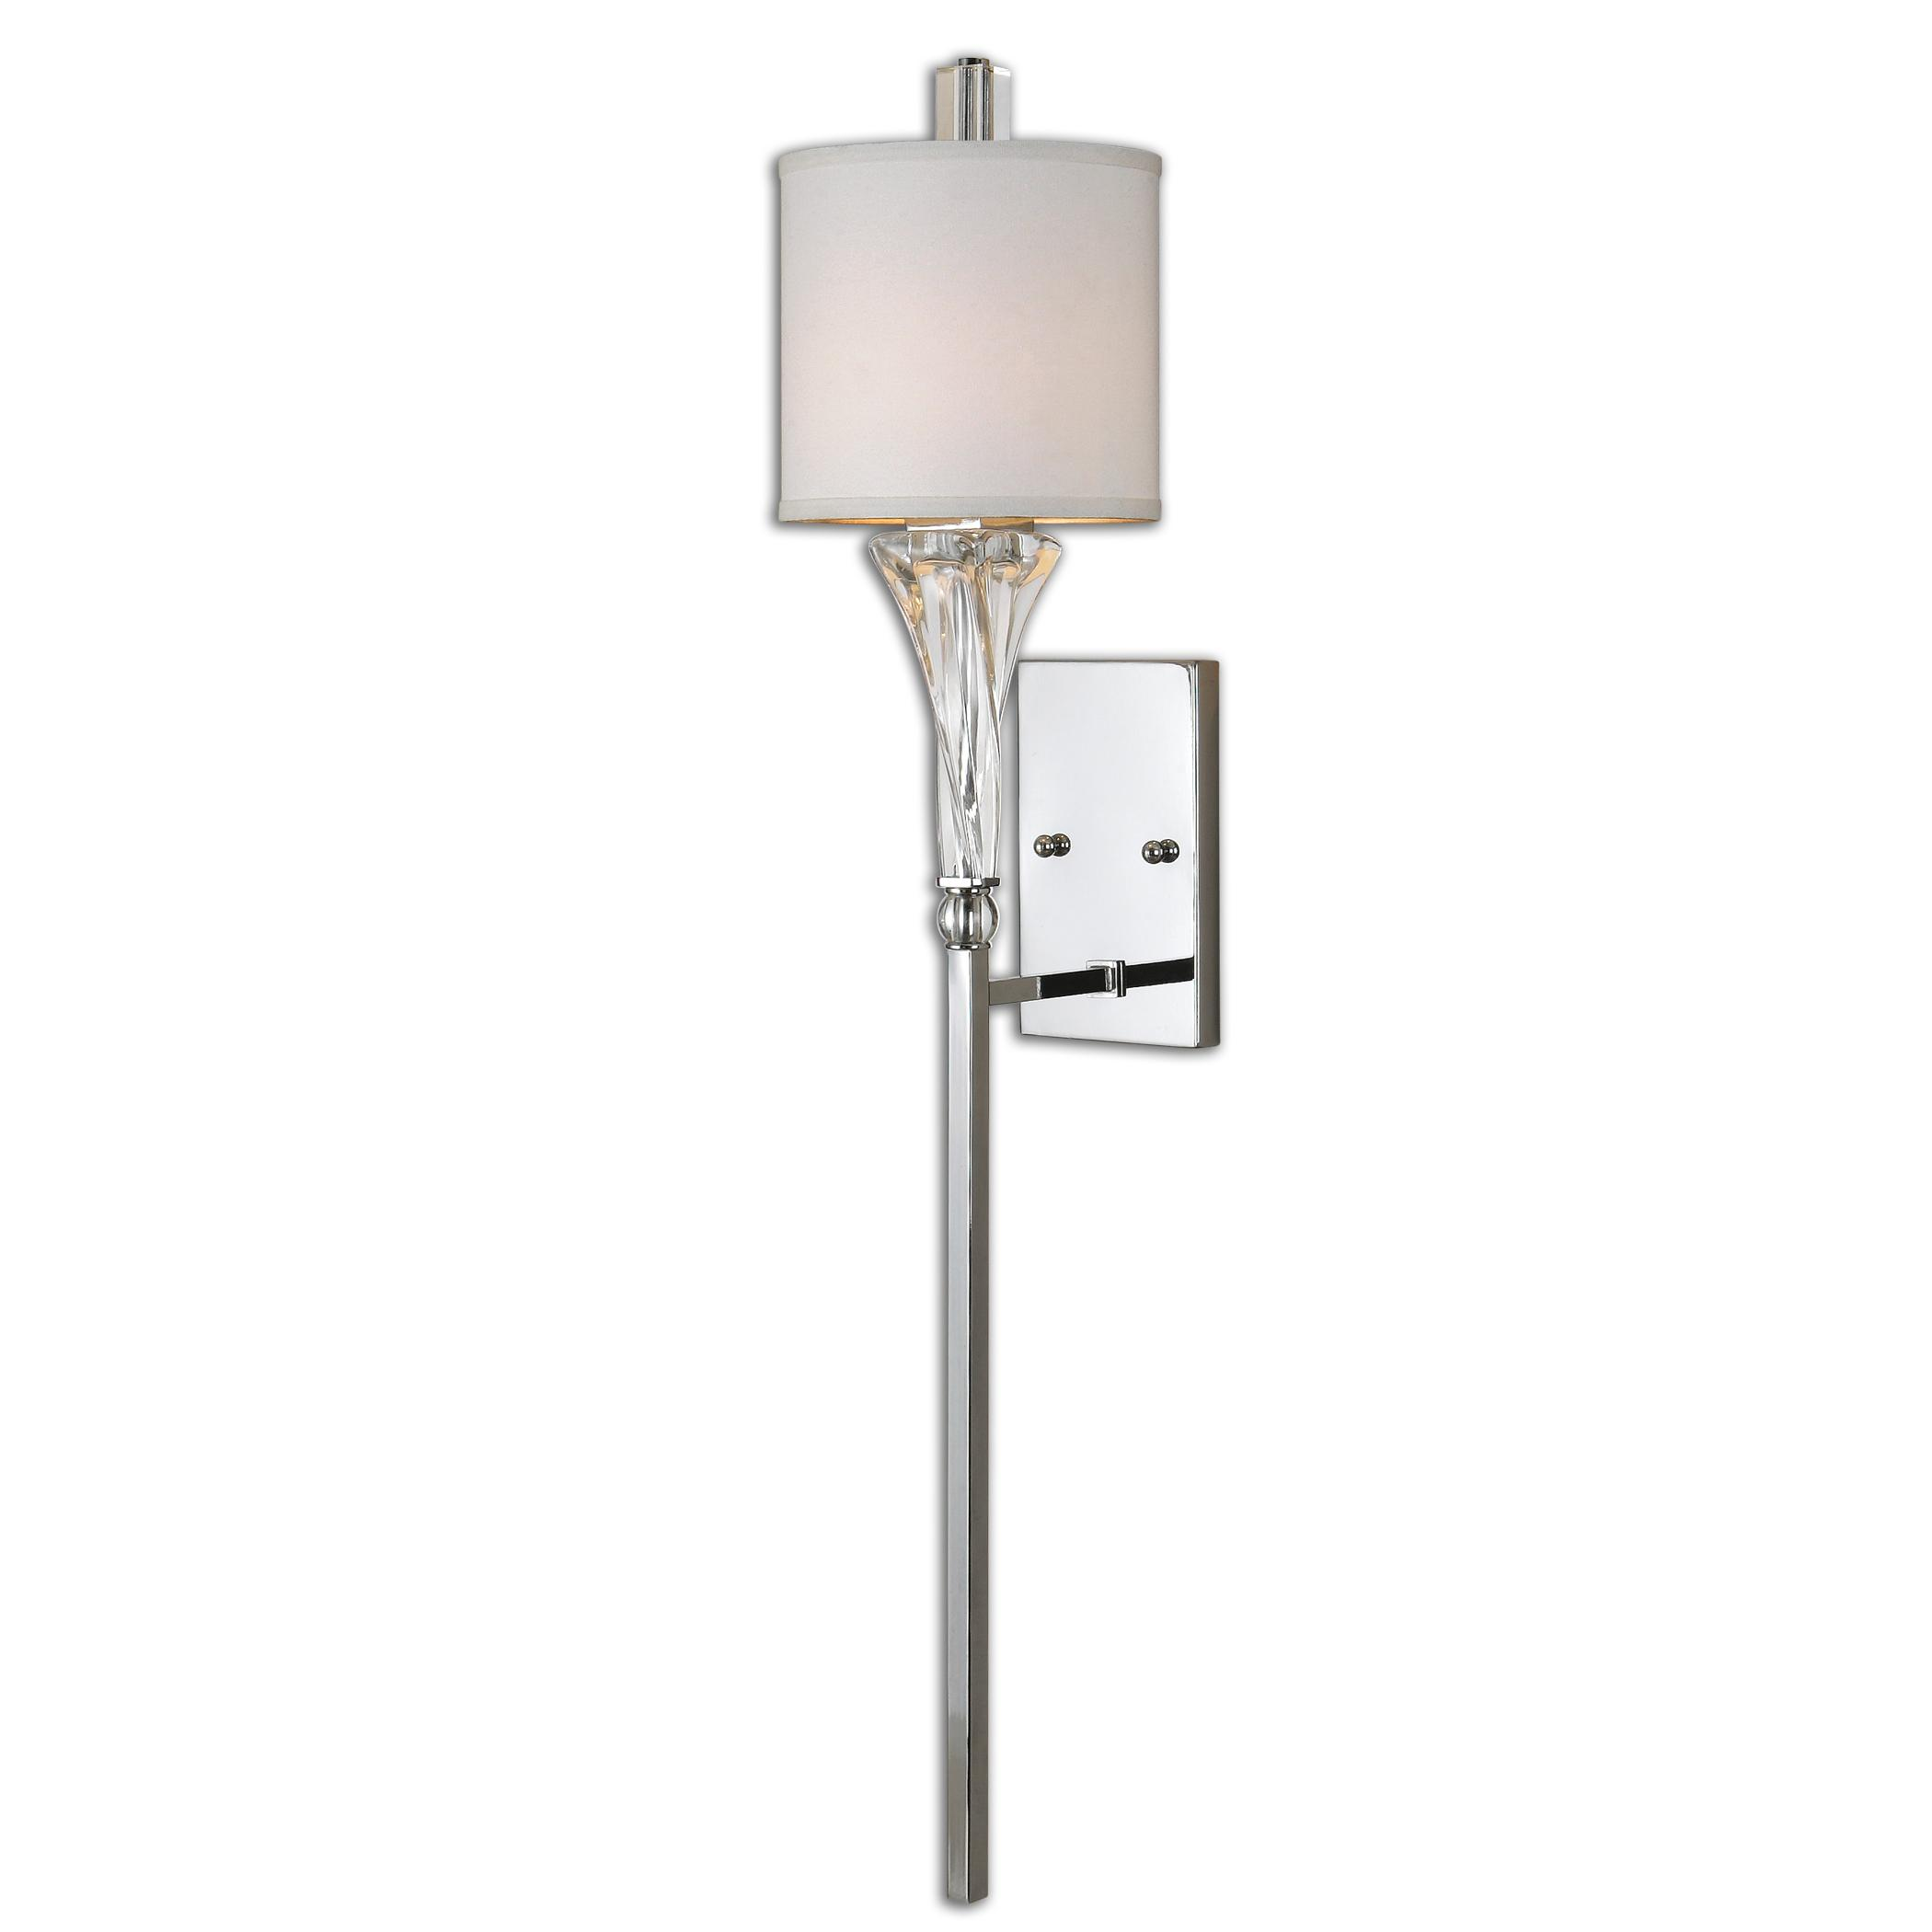 Uttermost Lighting Fixtures Uttermost Grancona 1 Light Chrome Wall Sconc - Item Number: 22495